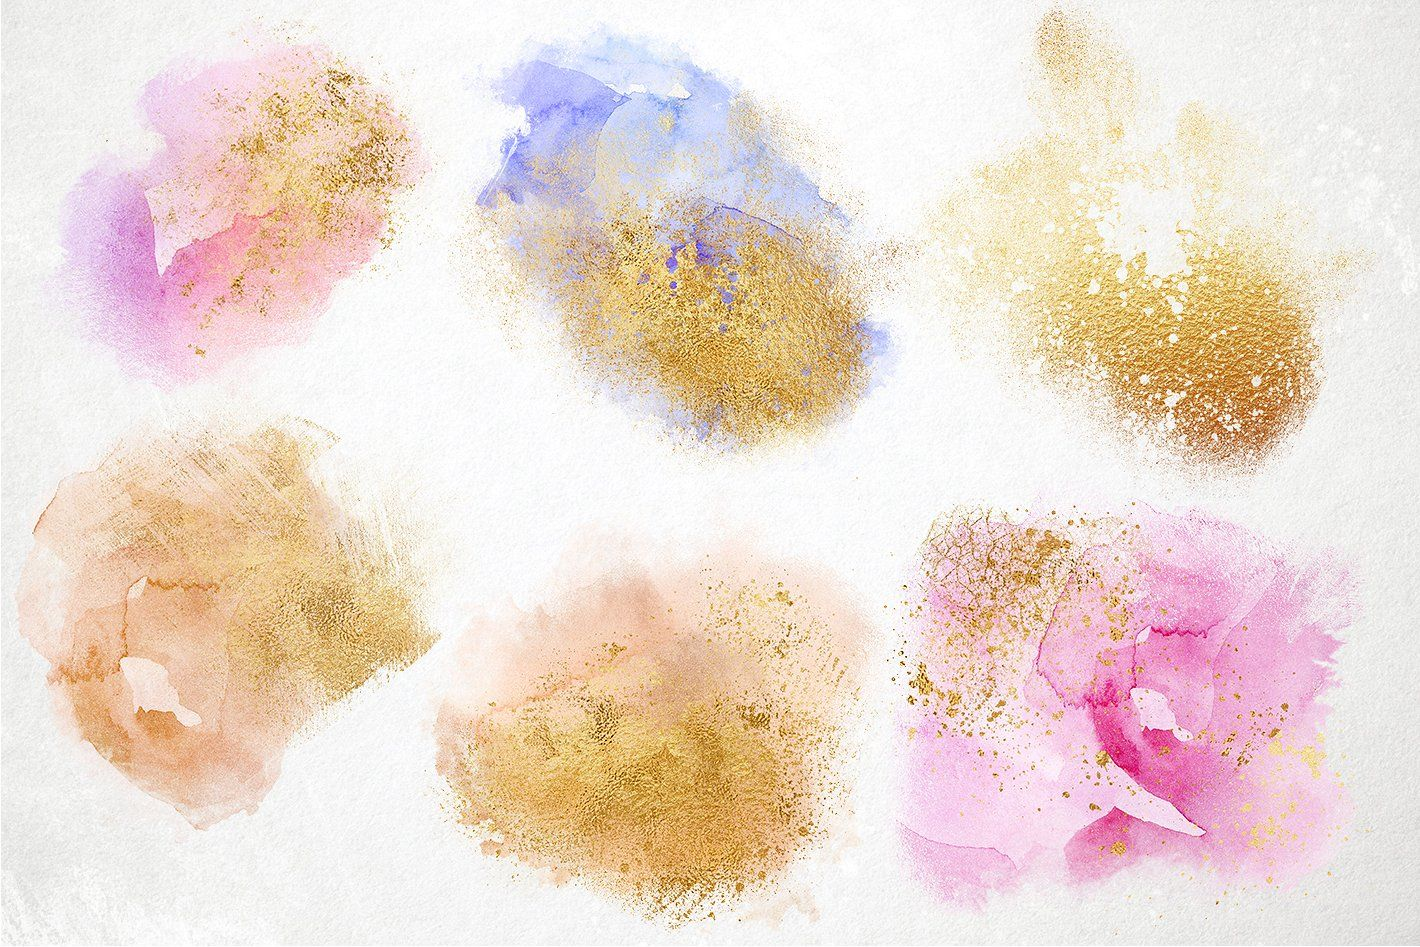 Watercolor Splashes With Gold Dust Watercolor Splash Paint